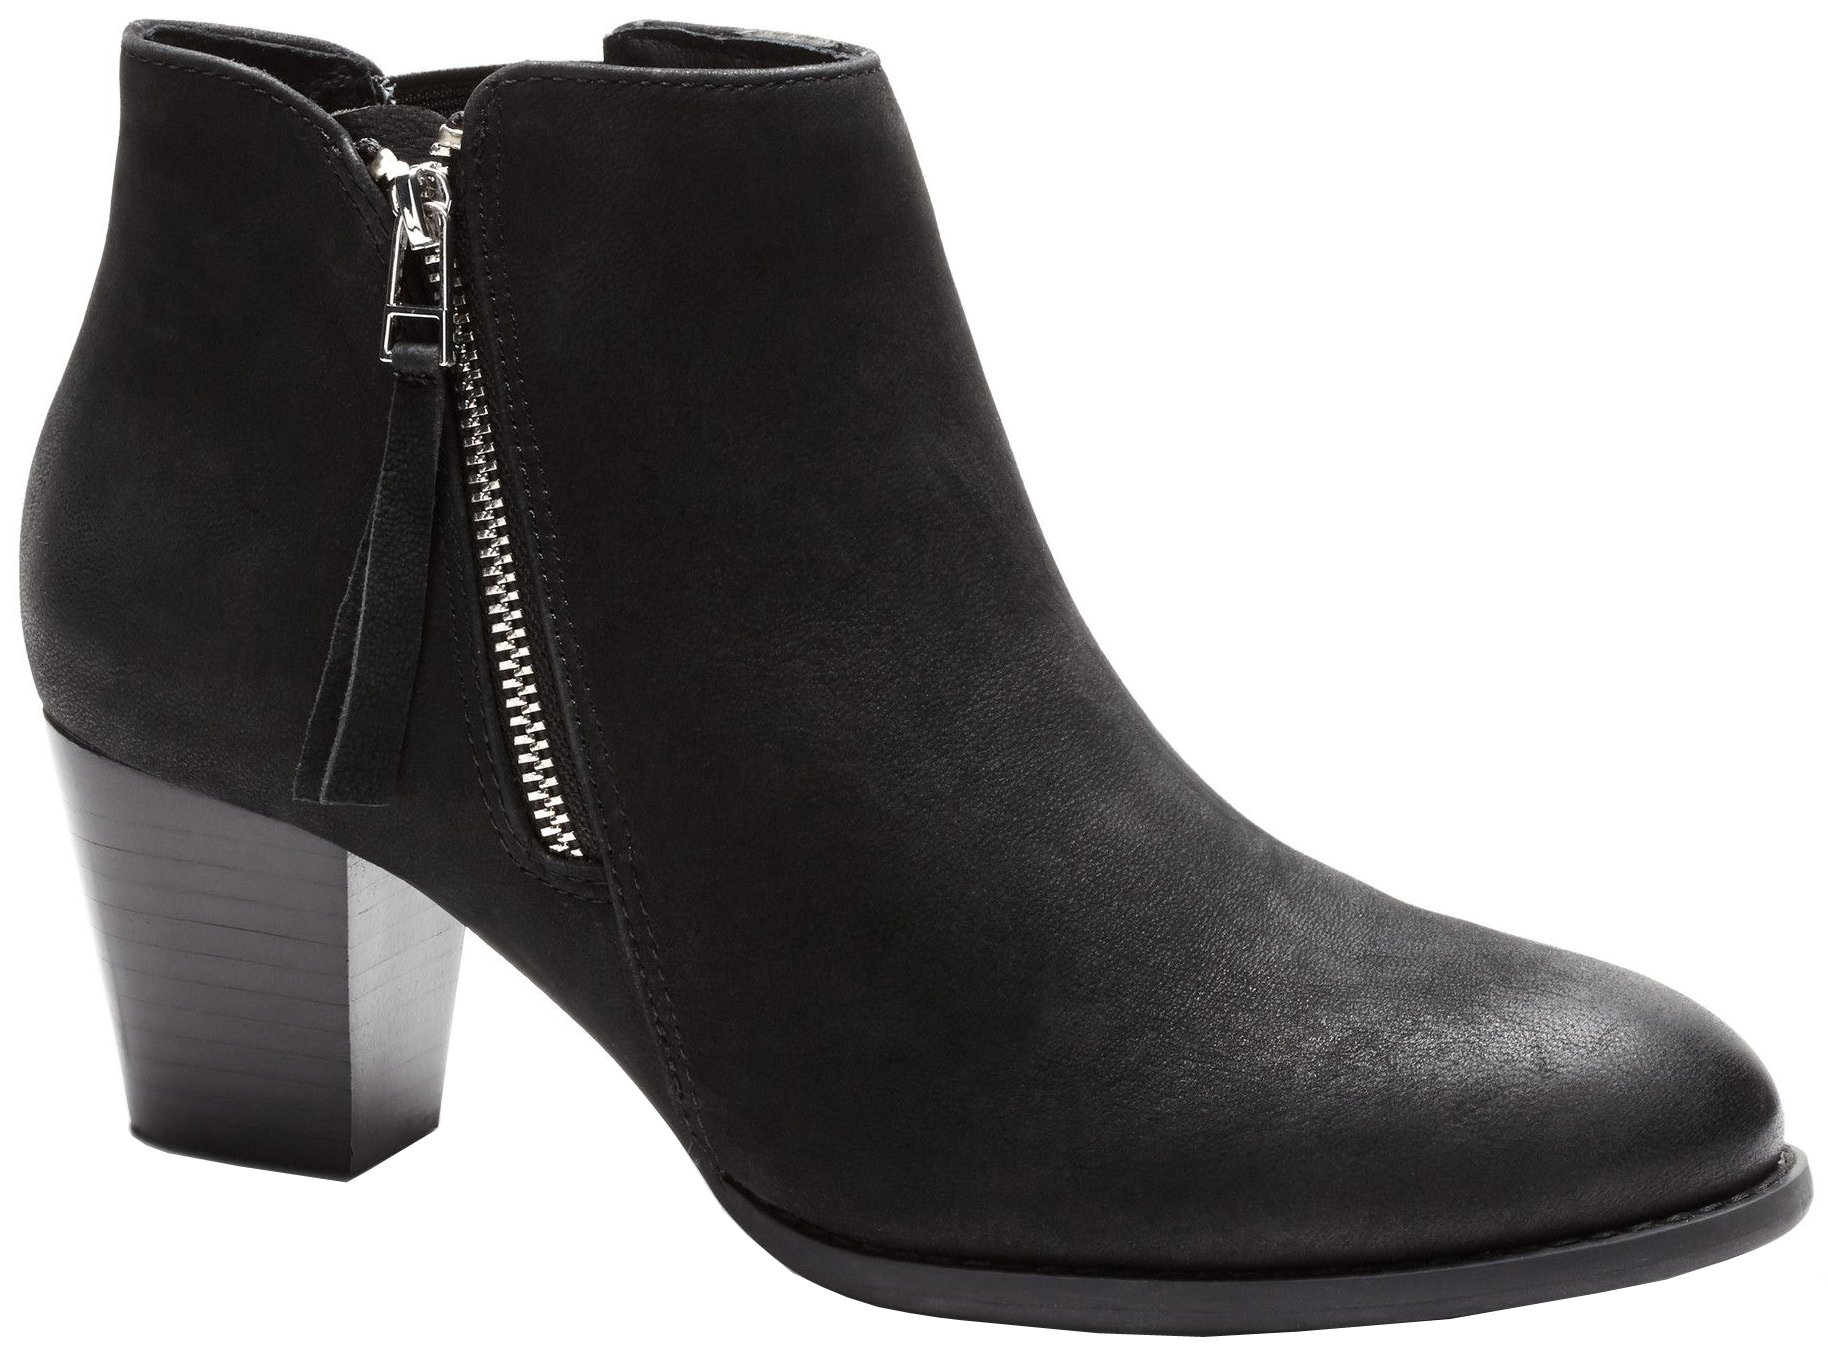 VIONIC Women's Upright Sterling Ankle Boot Black Boot Size 10 - Wide by Vionic